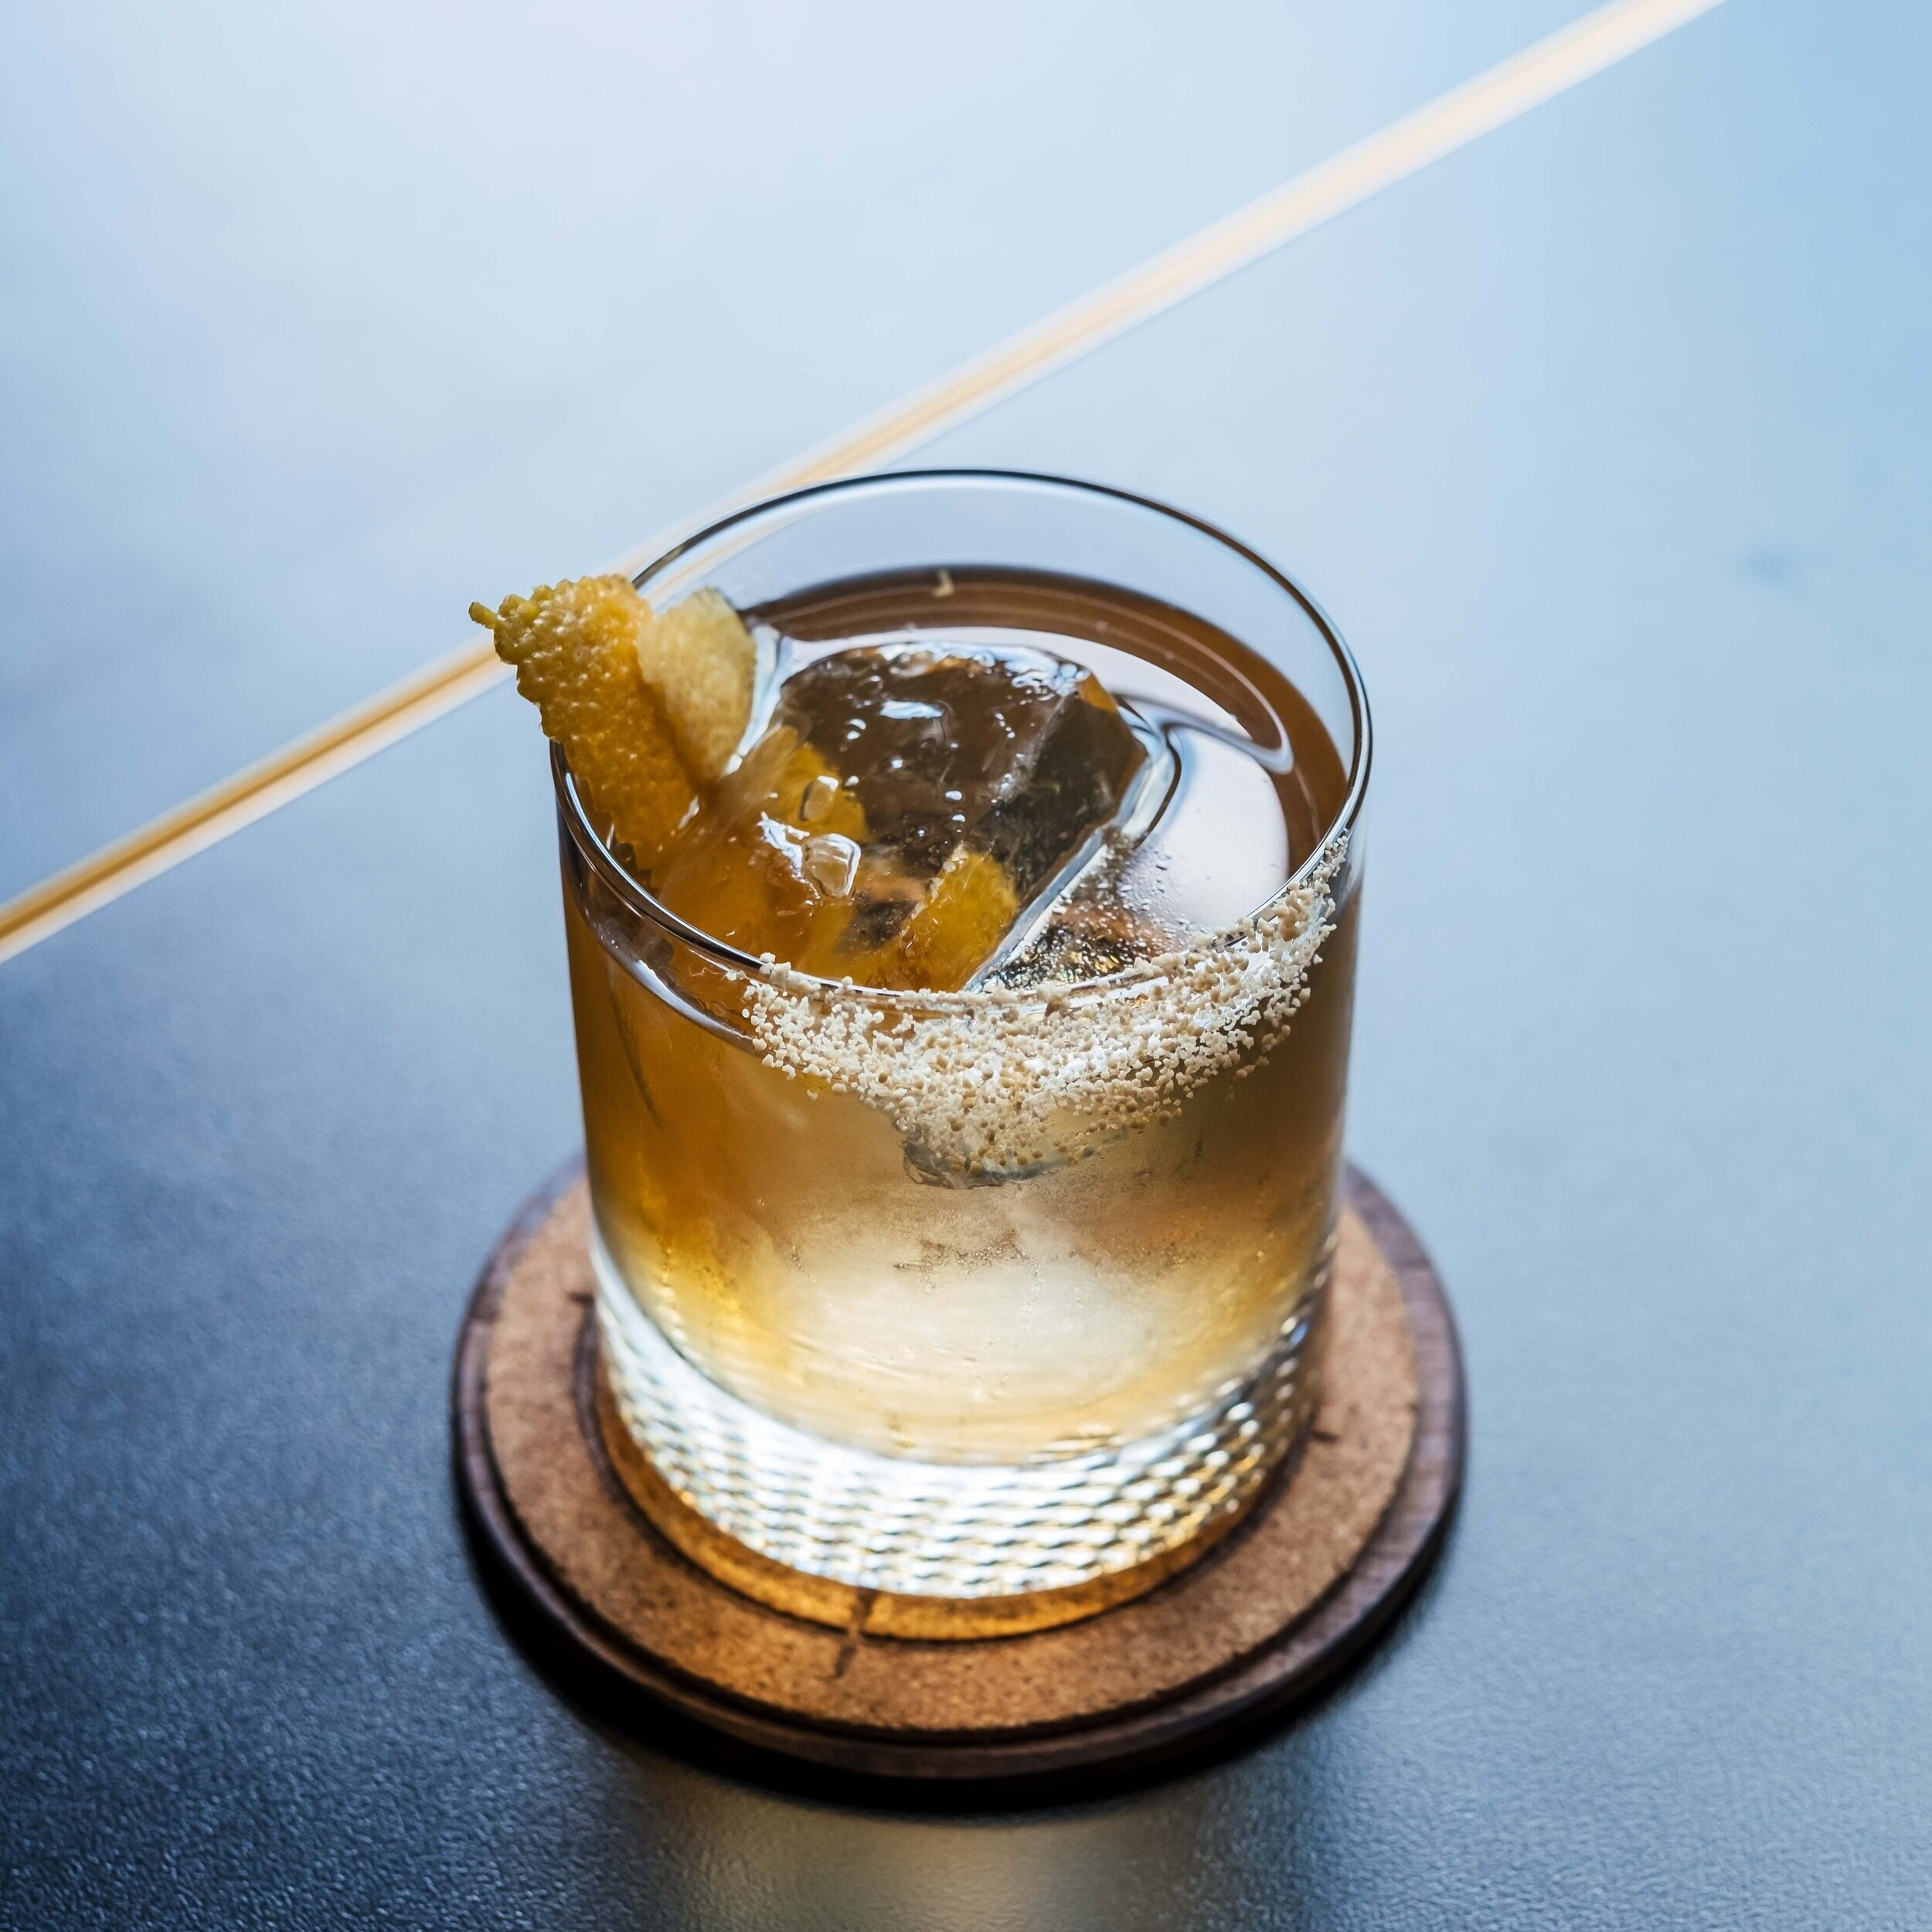 Featured Cocktail: Old 75 - with Cognac VS, champagne syrup, clarified lemon juice and Scrappy's black lemon bitters